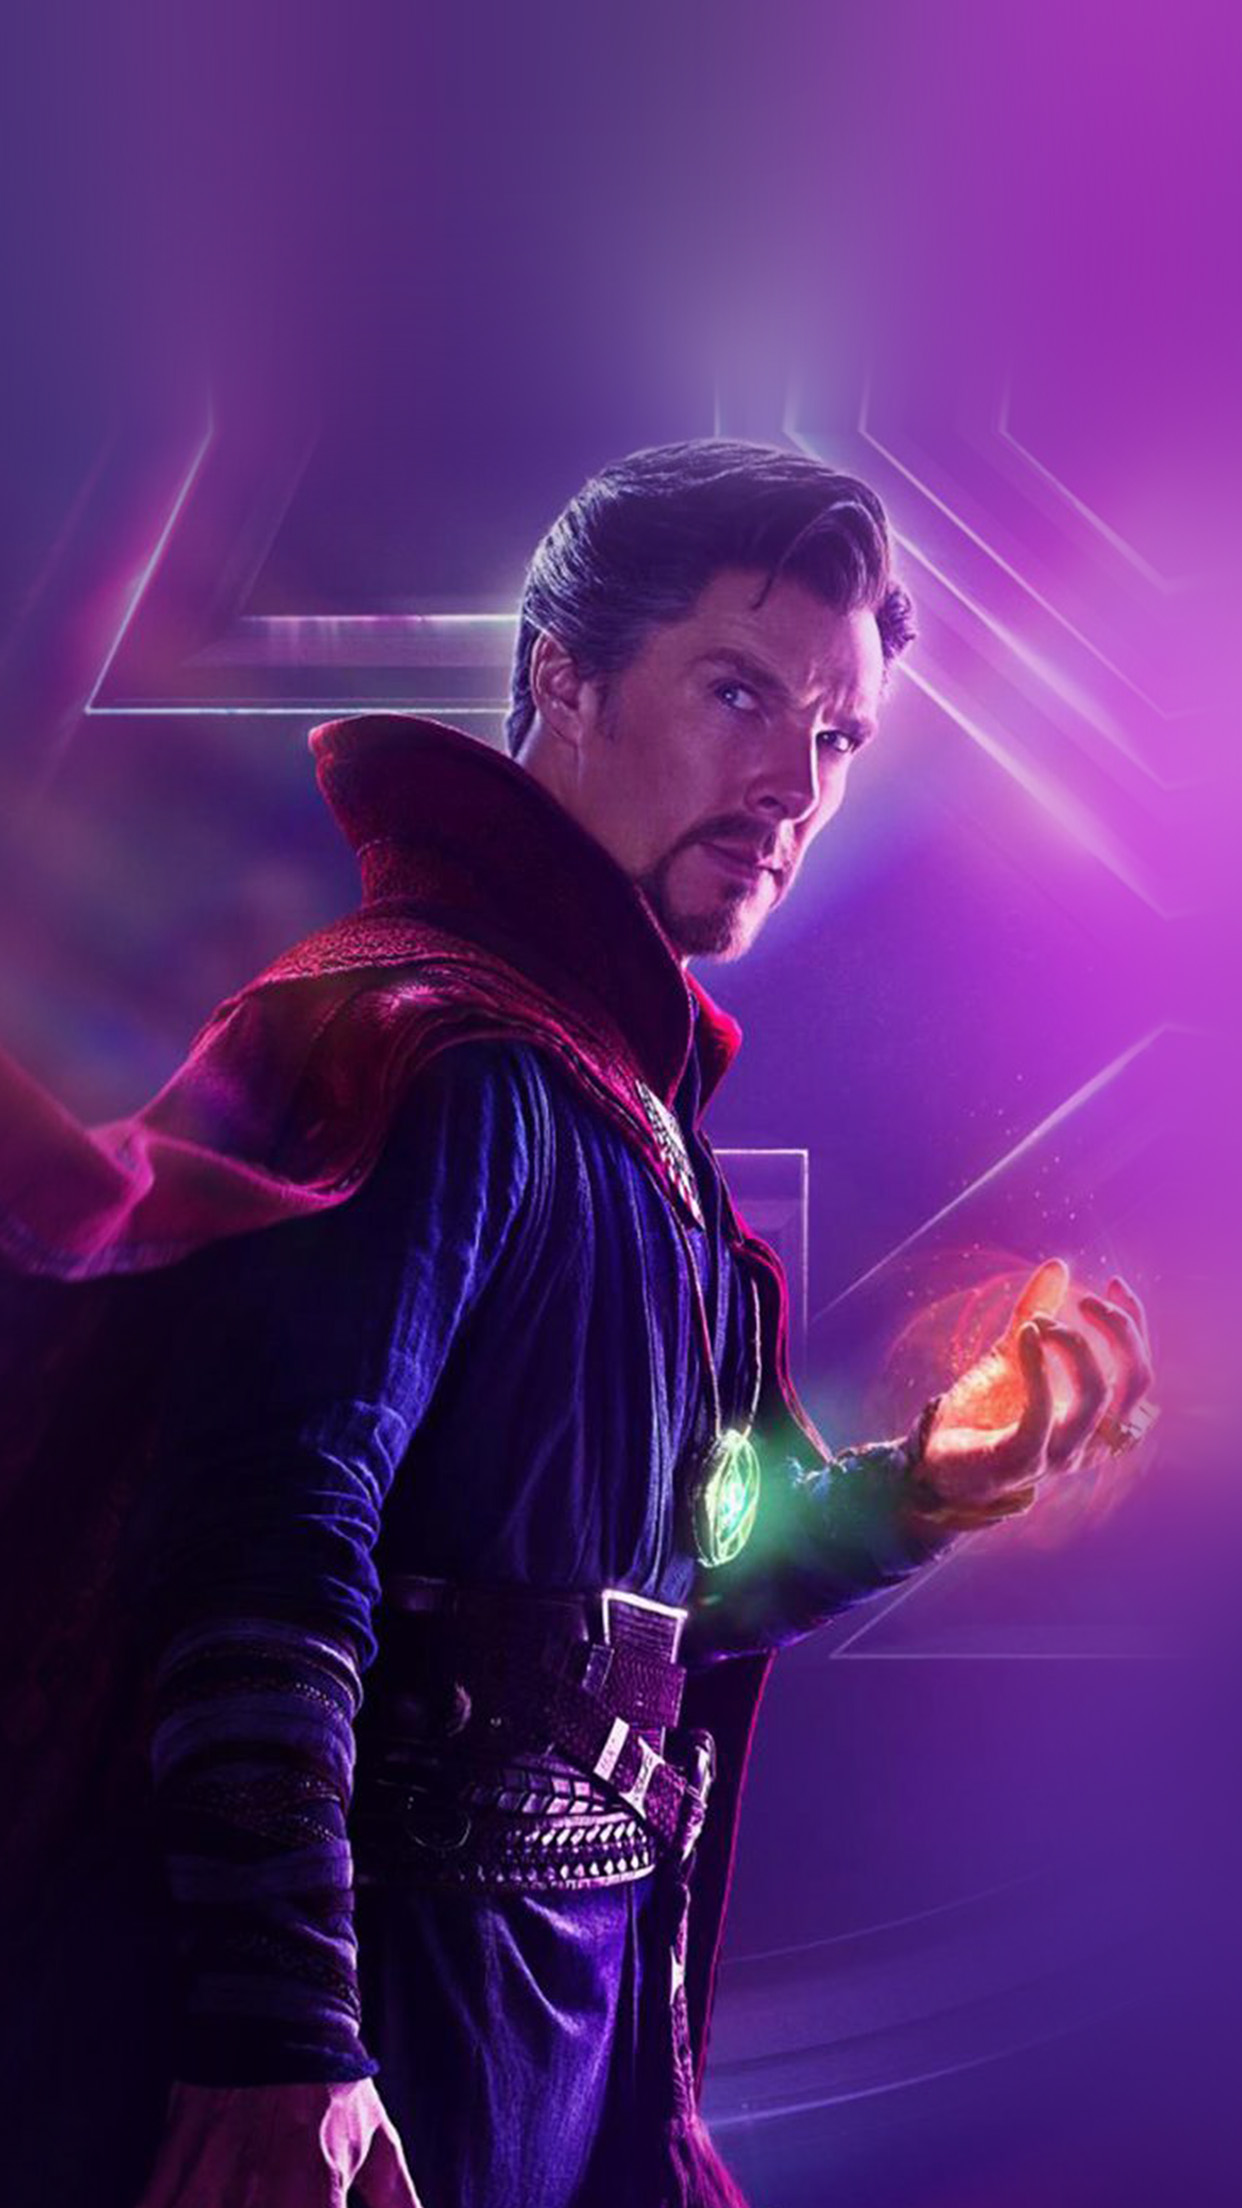 Iphone 6 Hd Car Wallpaper 1080p Be93 Avengers Doctor Strange Film Infinitywar Marvel Hero